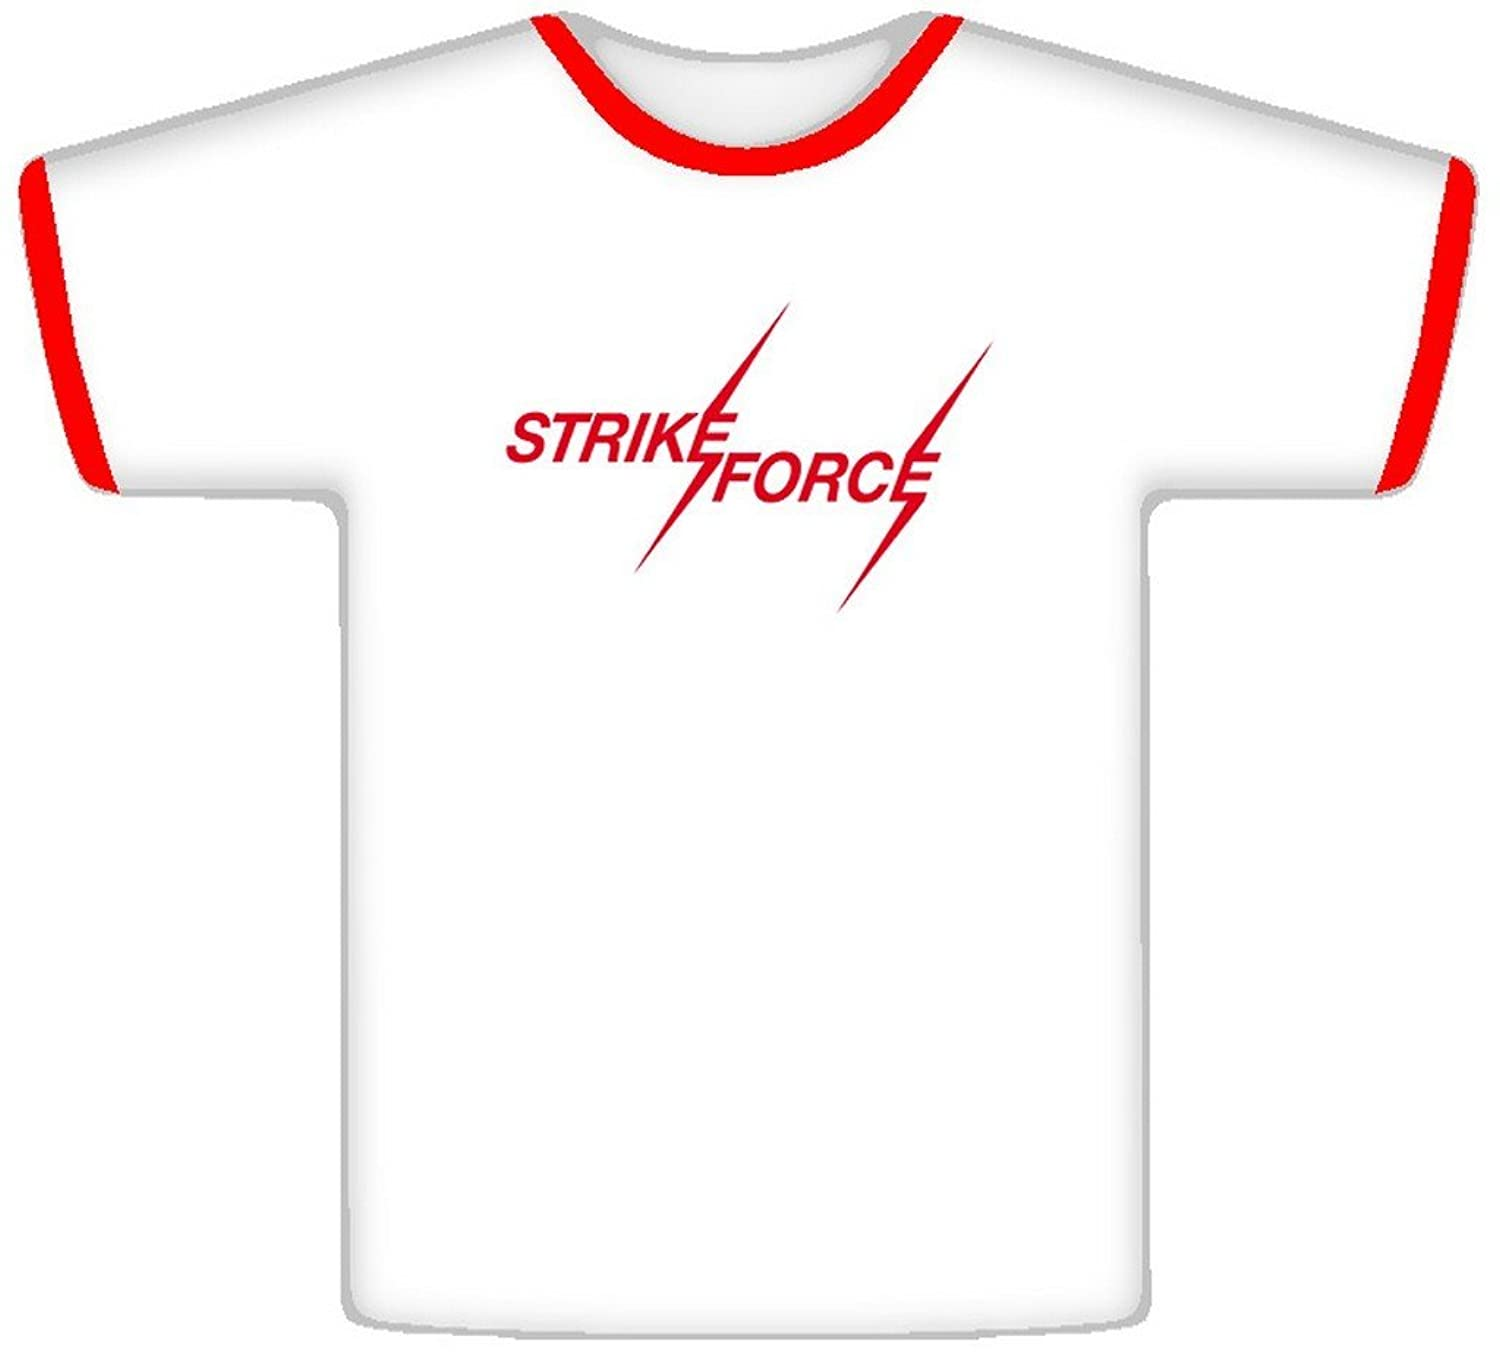 Strikeforce sports coupons - Strikeforce Sports Coupons 57